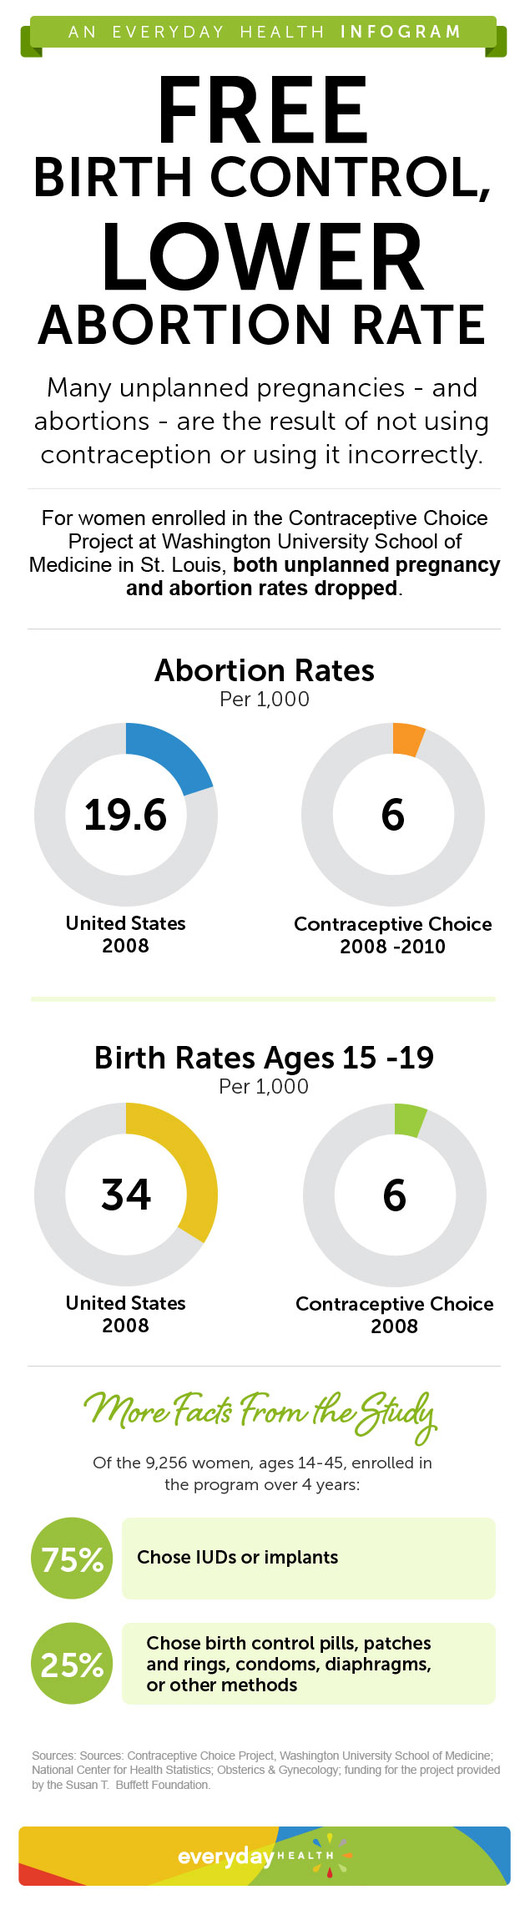 Everyday Health made an infogram about the awesome results of the Contraceptive CHOICE Project!